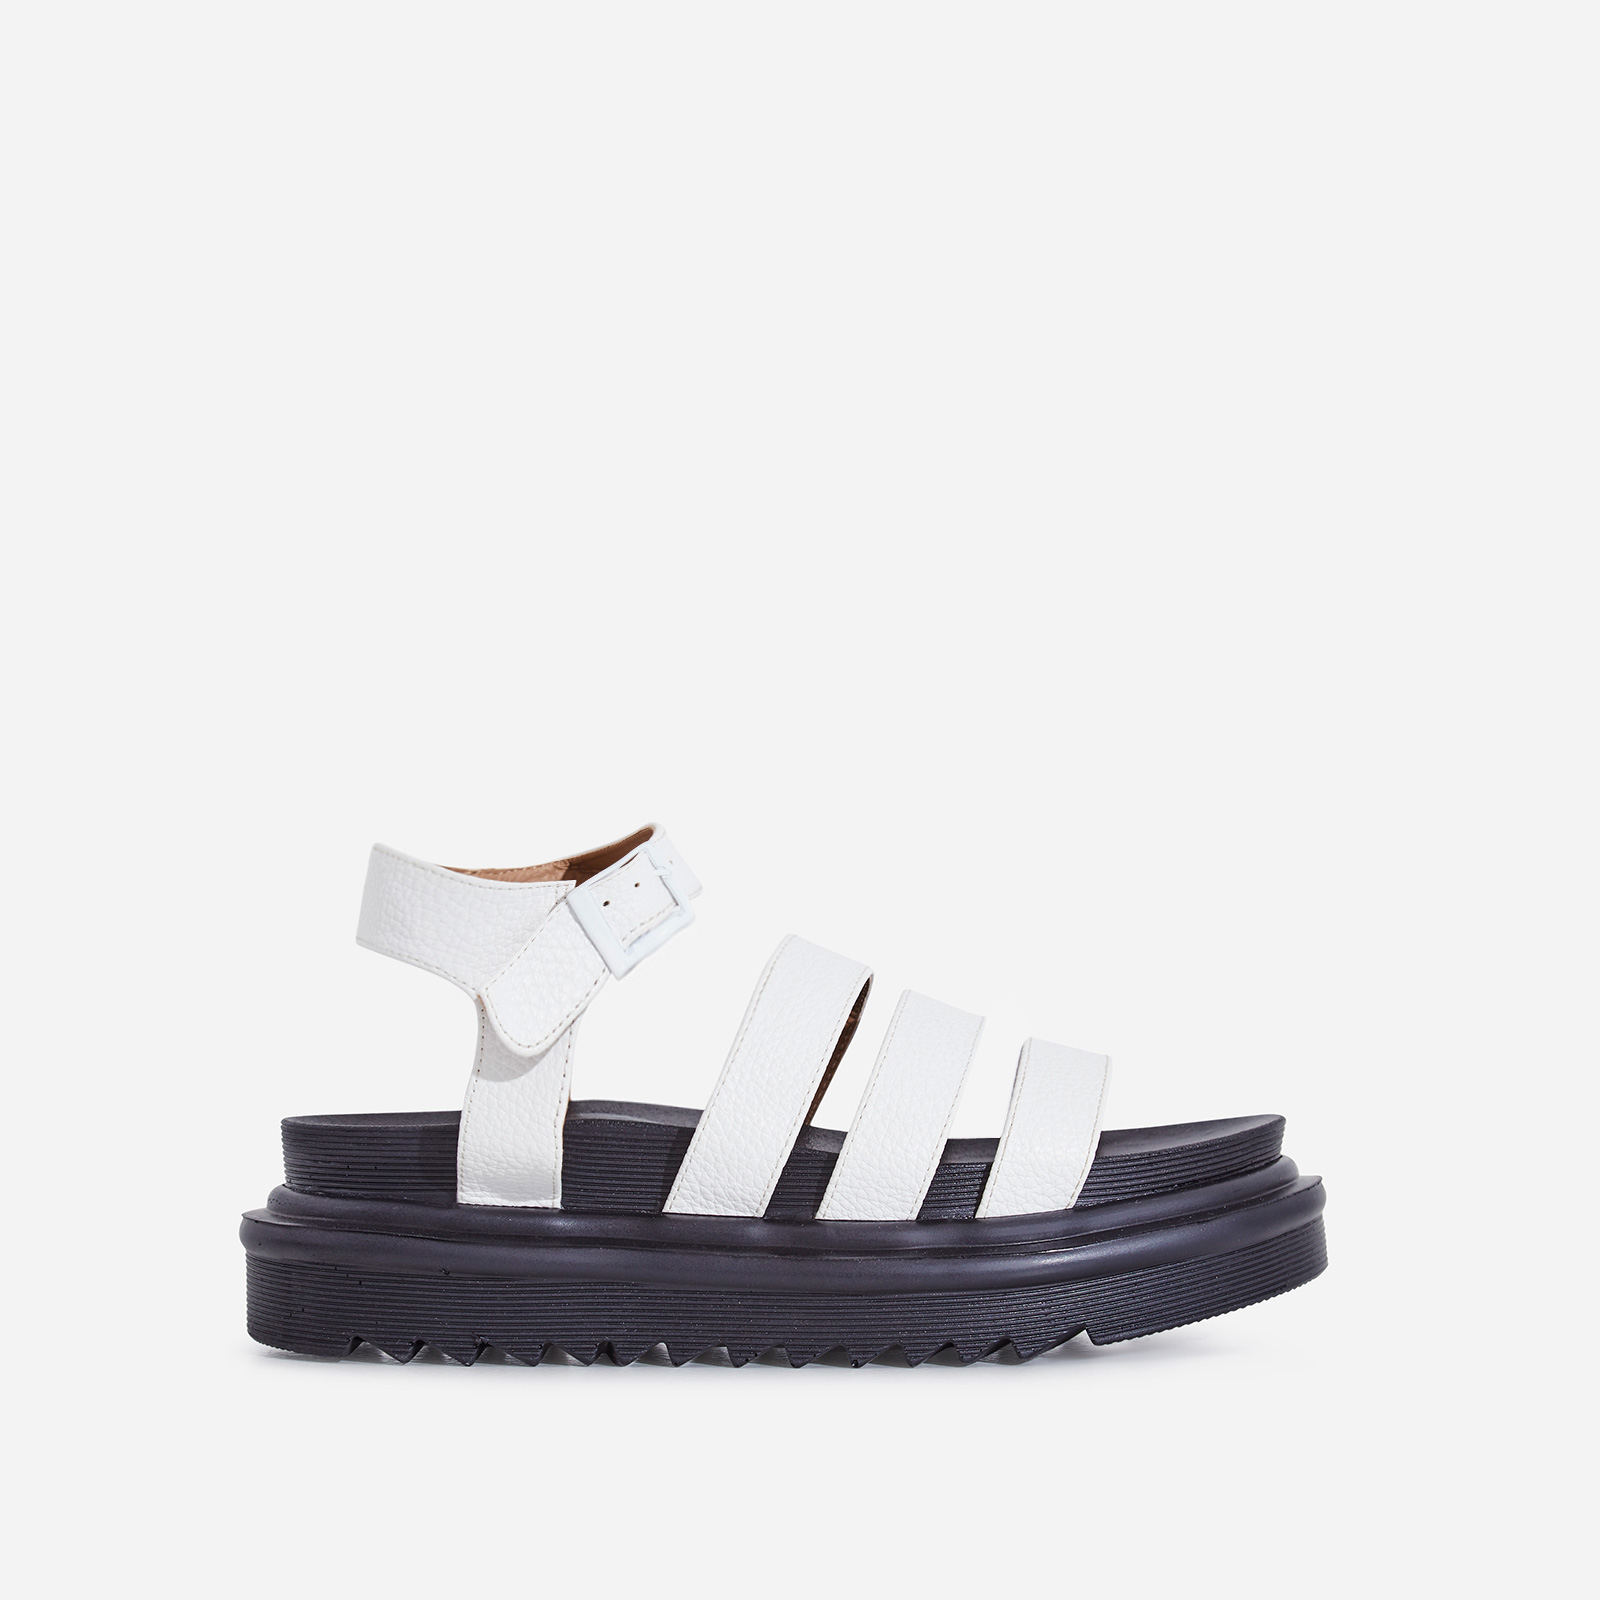 Clueless Chunky Sole Sandal In White Faux Leather